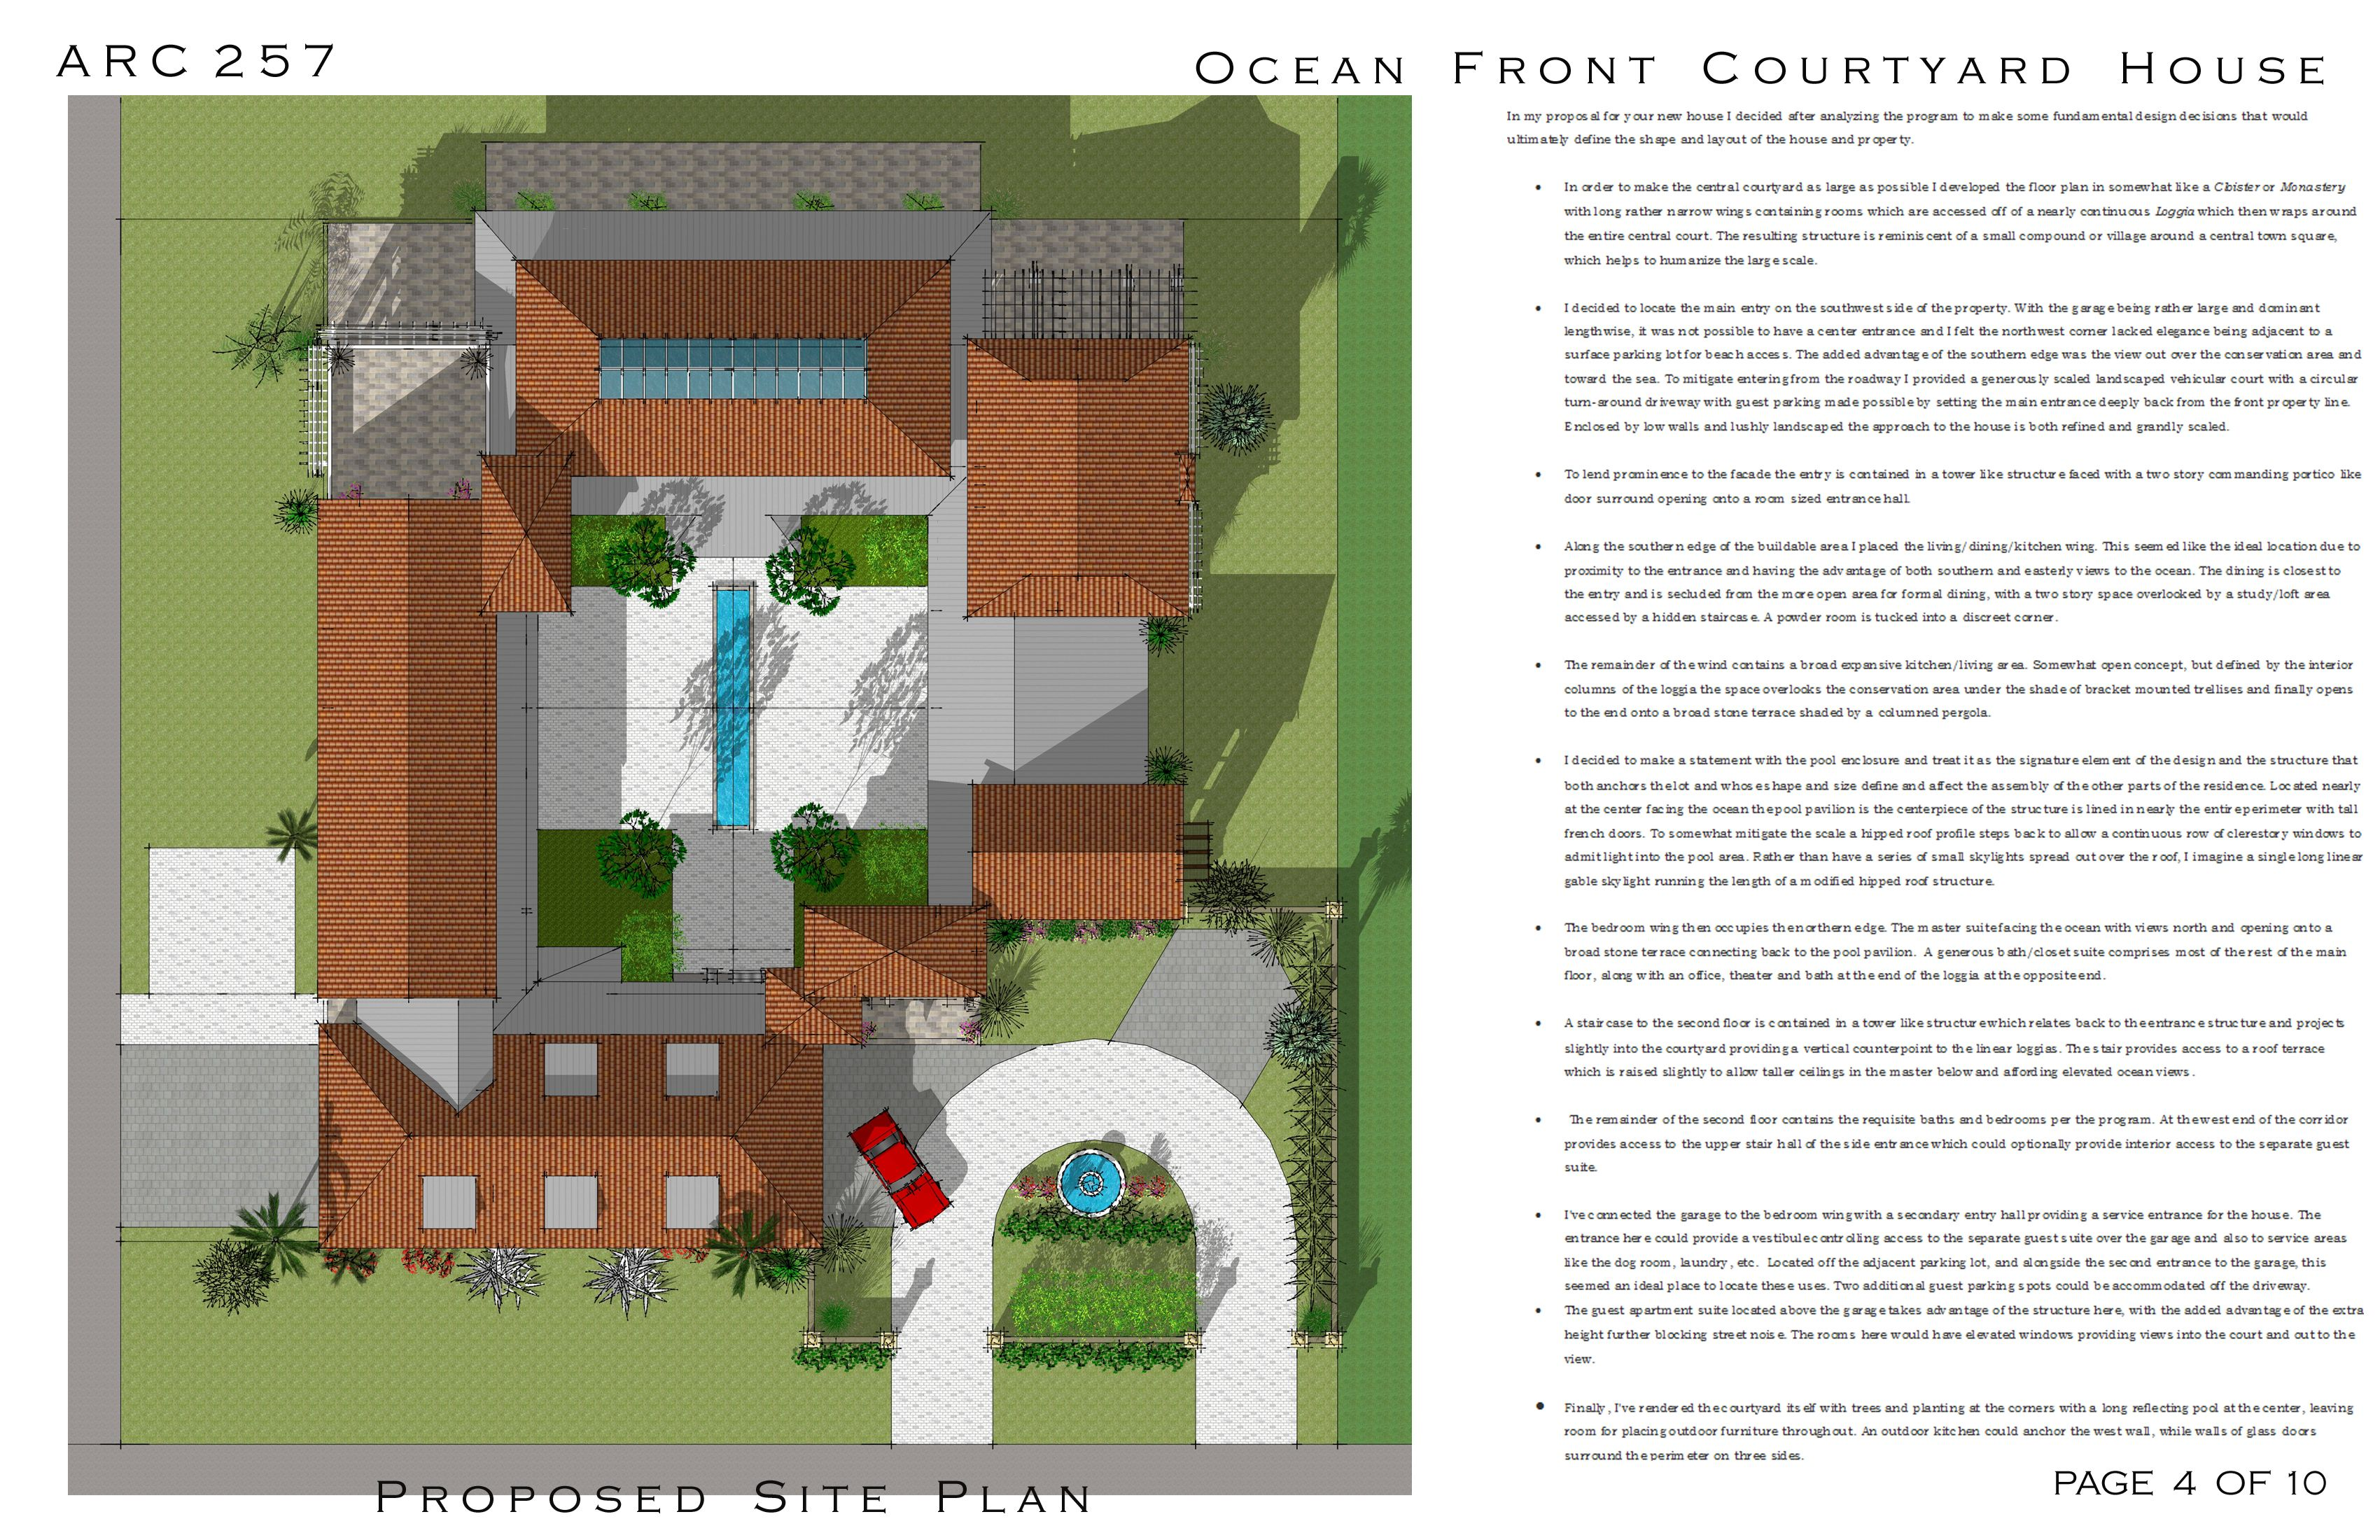 Multi-Story Family Homes project in Cocoa Beach, US designed by Arcadia Design - Oceanfront Courtyard House